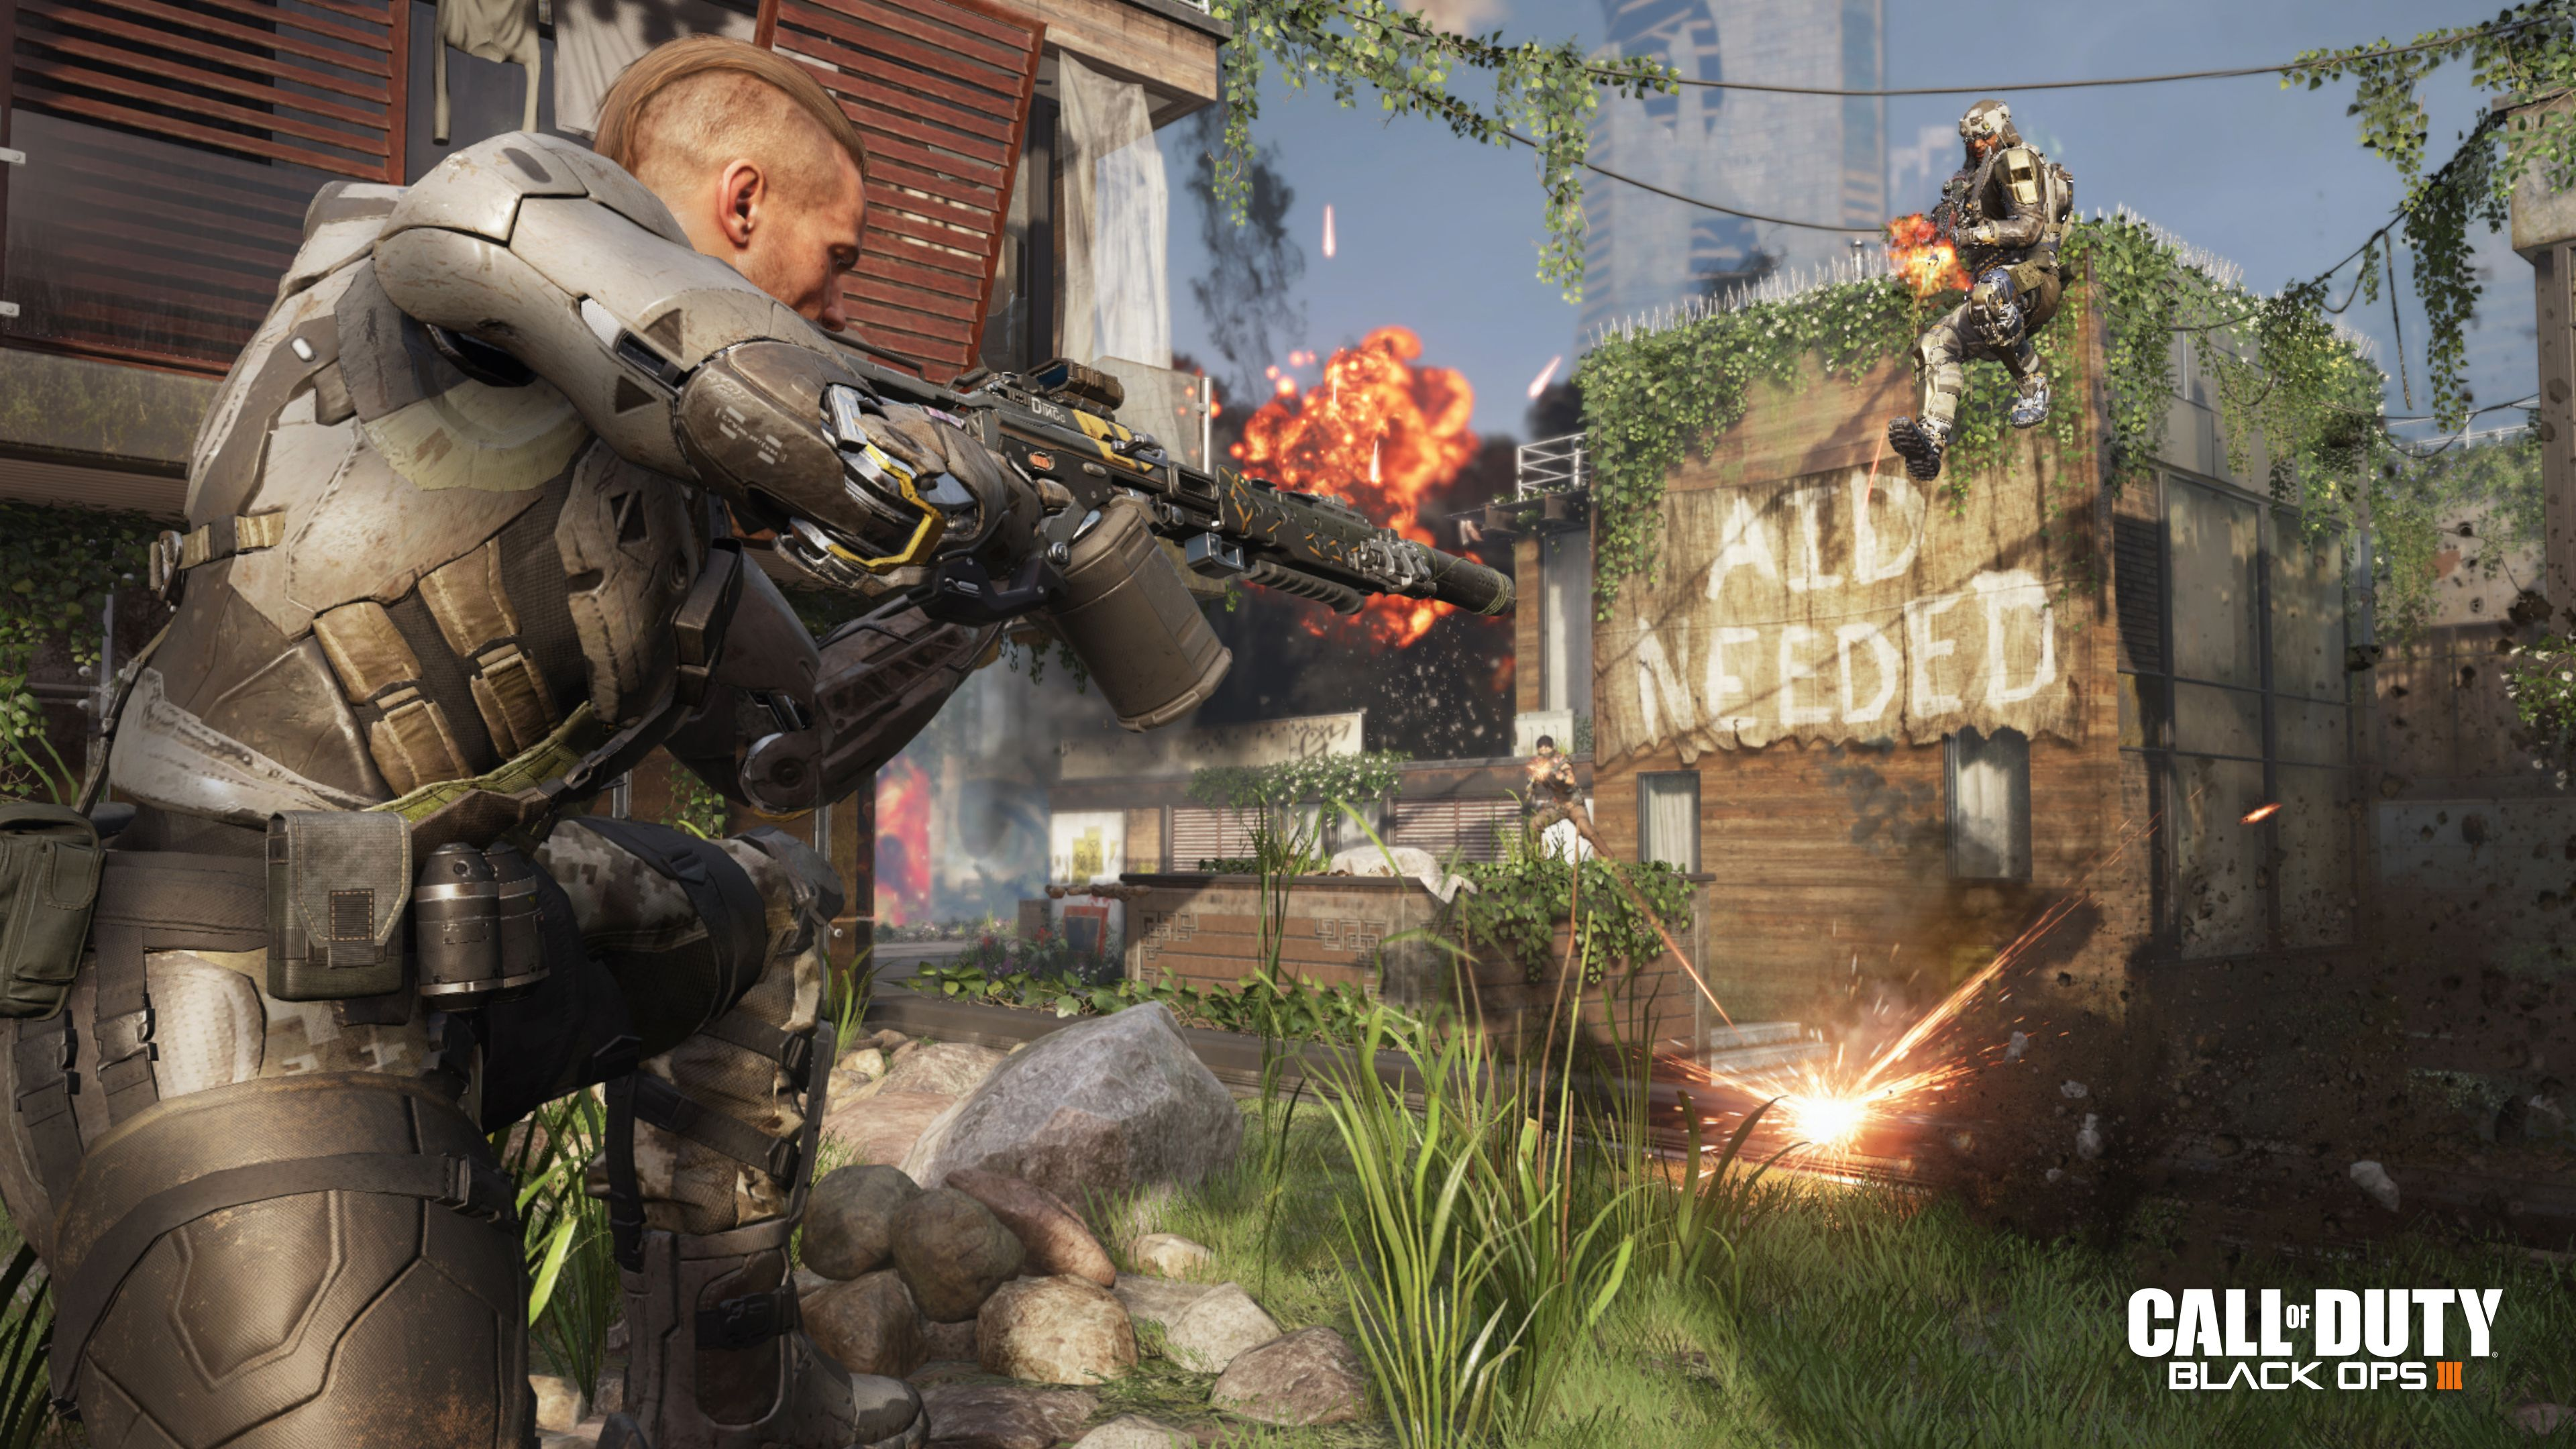 Call Of Duty Black Ops III Gets New Batch Of 4K